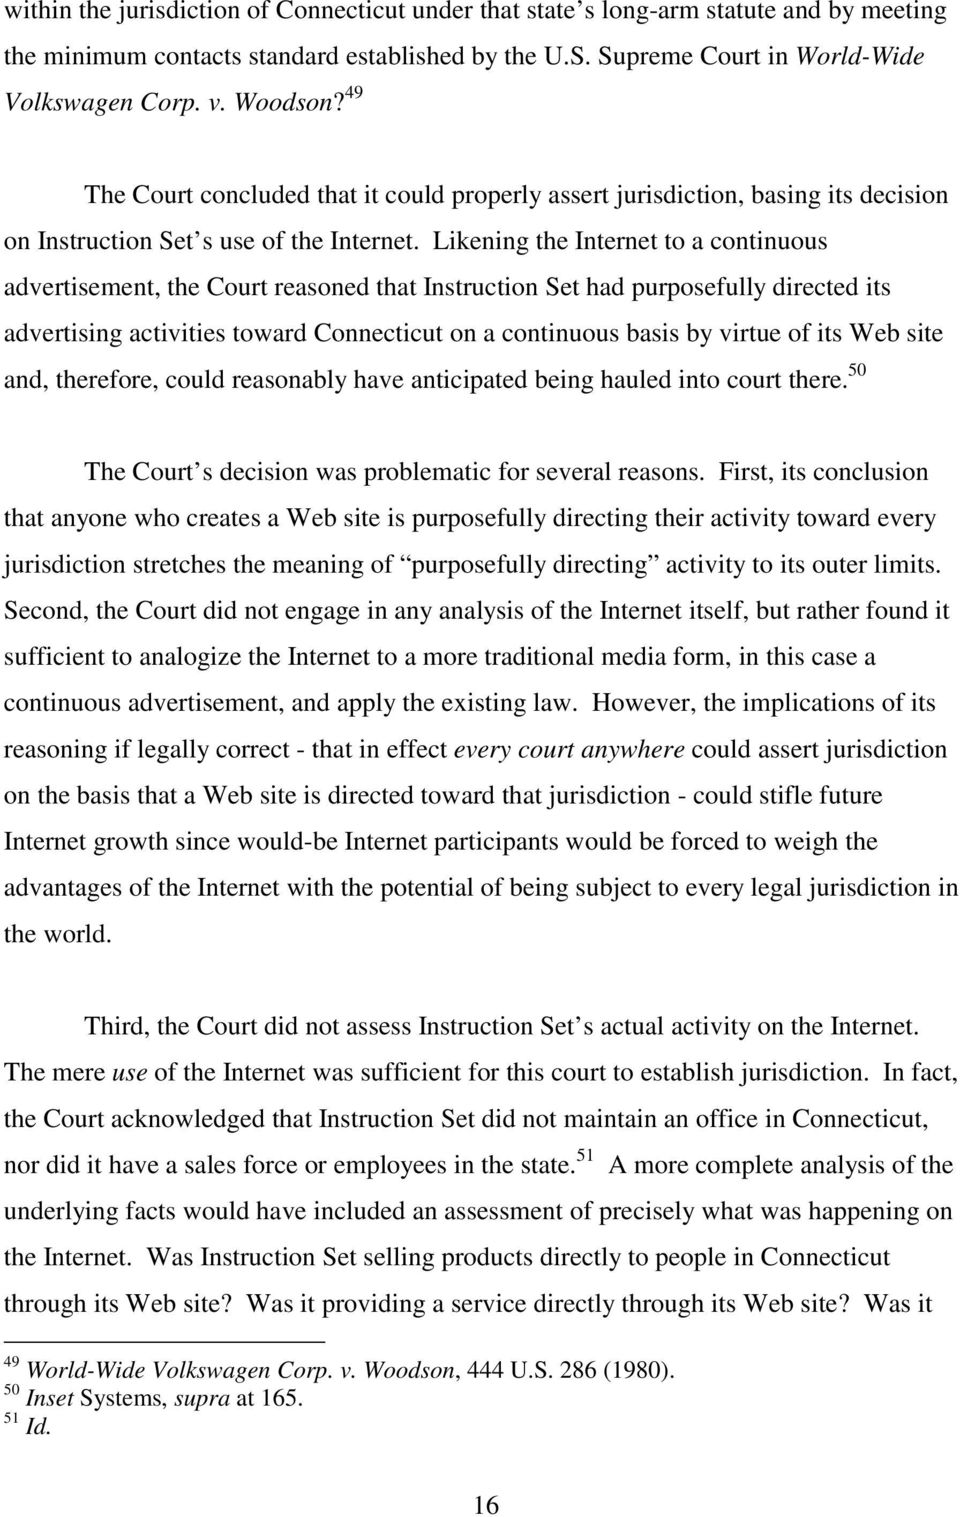 Likening the Internet to a continuous advertisement, the Court reasoned that Instruction Set had purposefully directed its advertising activities toward Connecticut on a continuous basis by virtue of